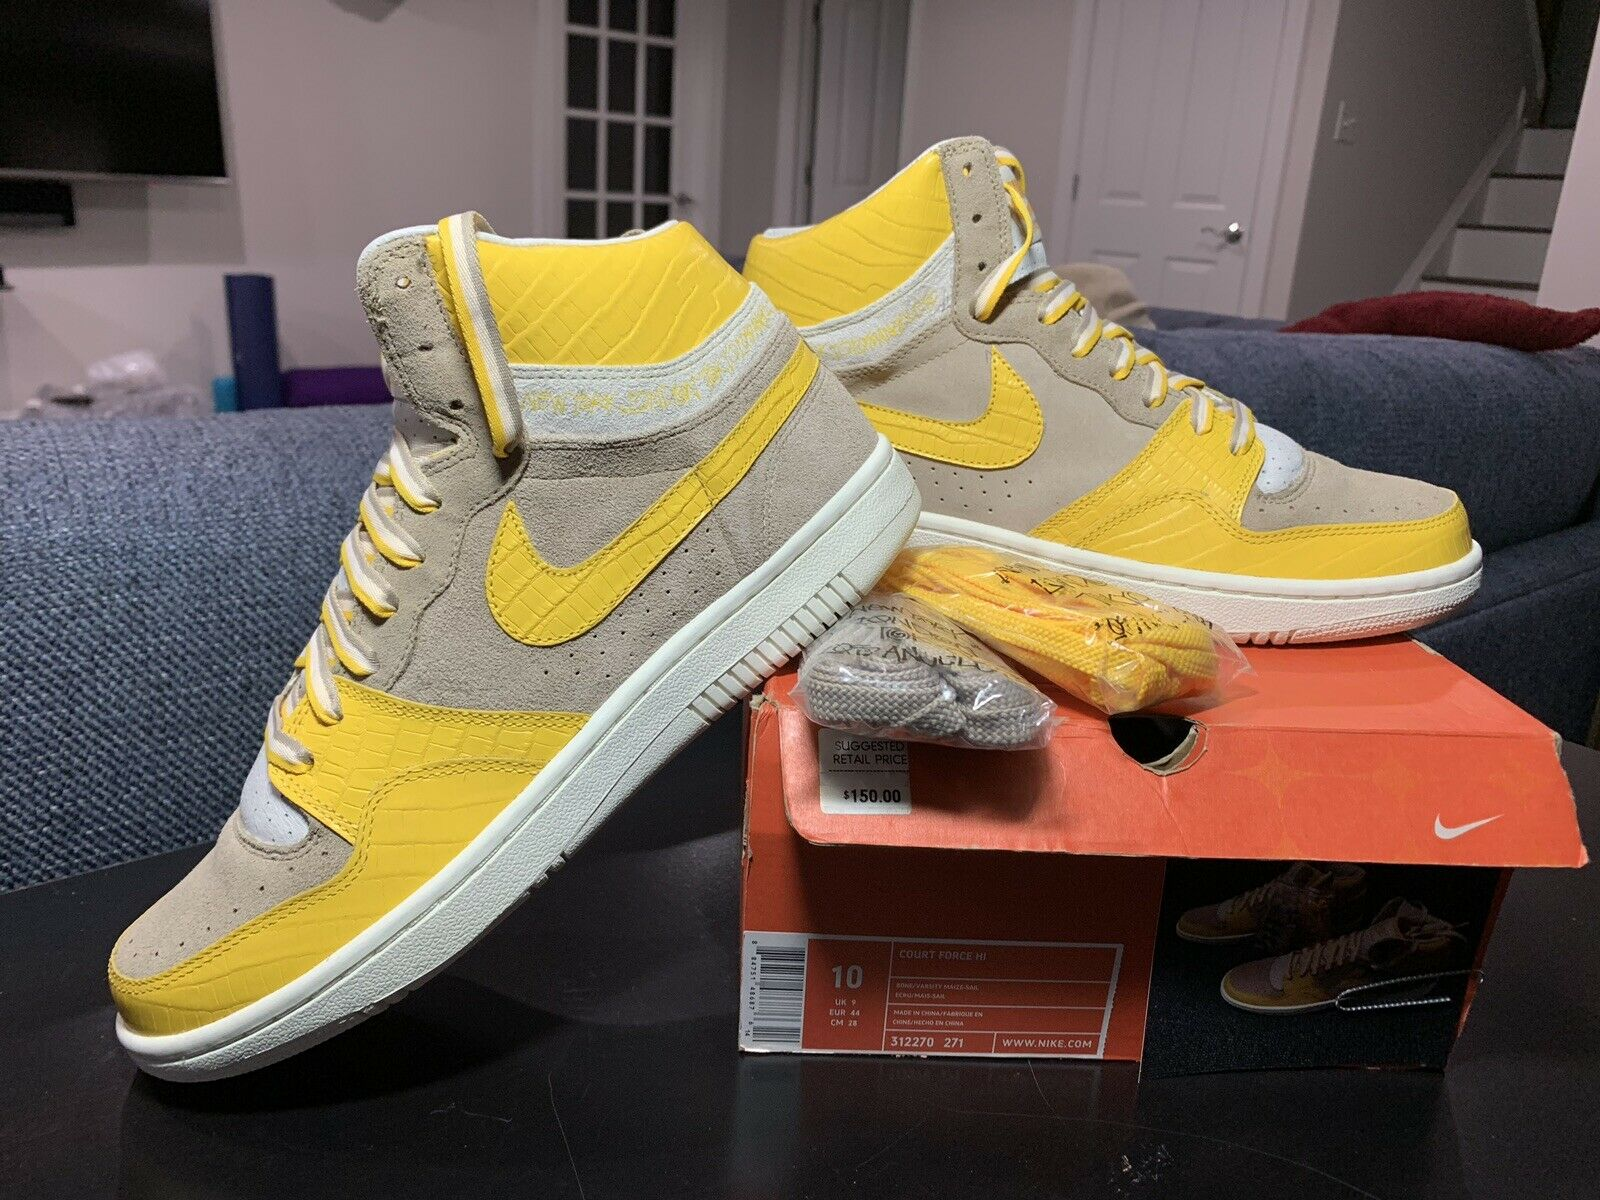 2005 Nike Dunk COURT FORCE HI STUSSY BONE MAIZE YELLOW SIZE 10 - DS Conditon